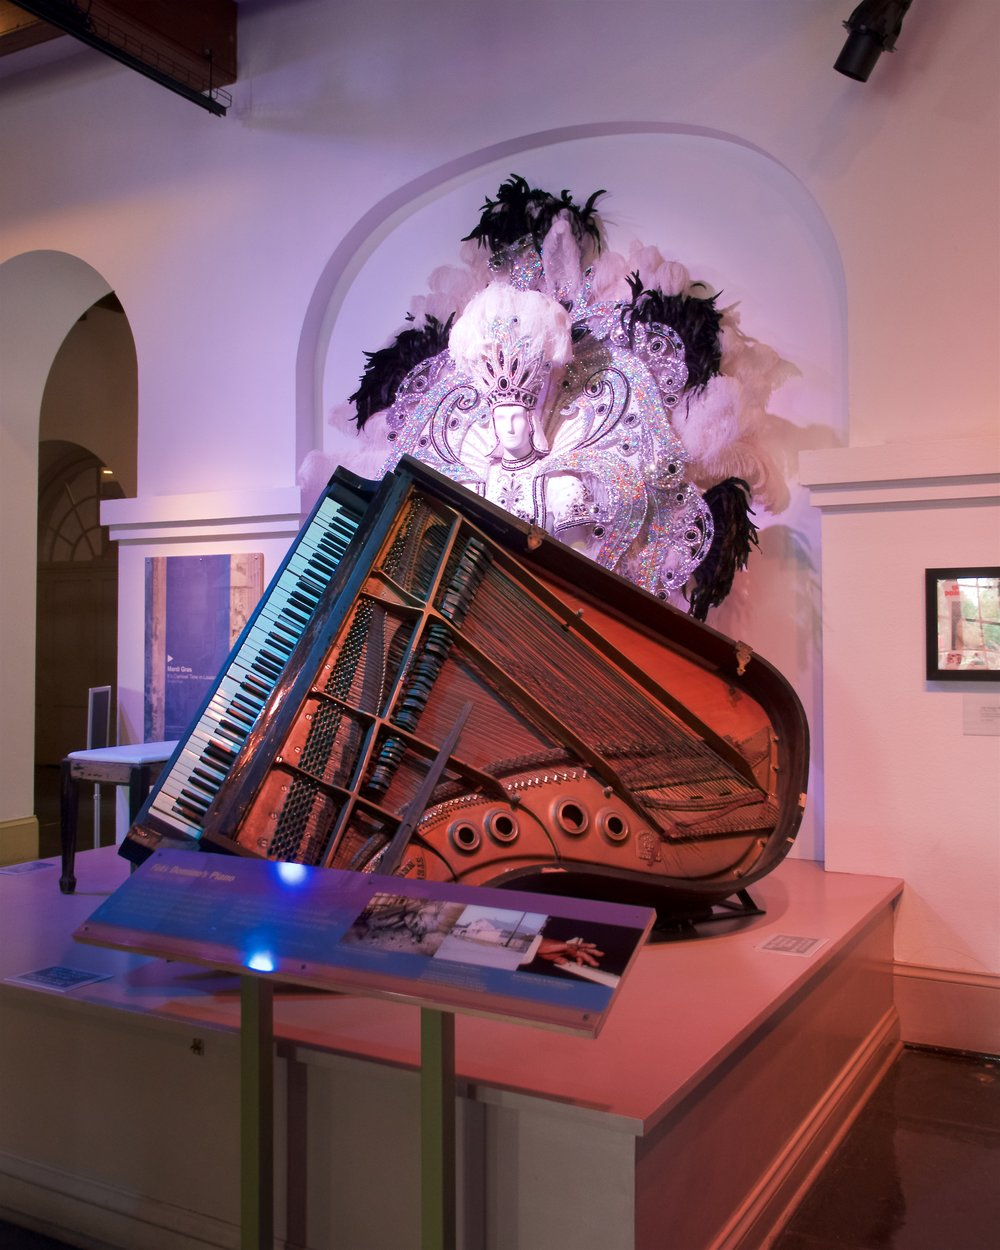 Fats Domino's piano after Katrina damage